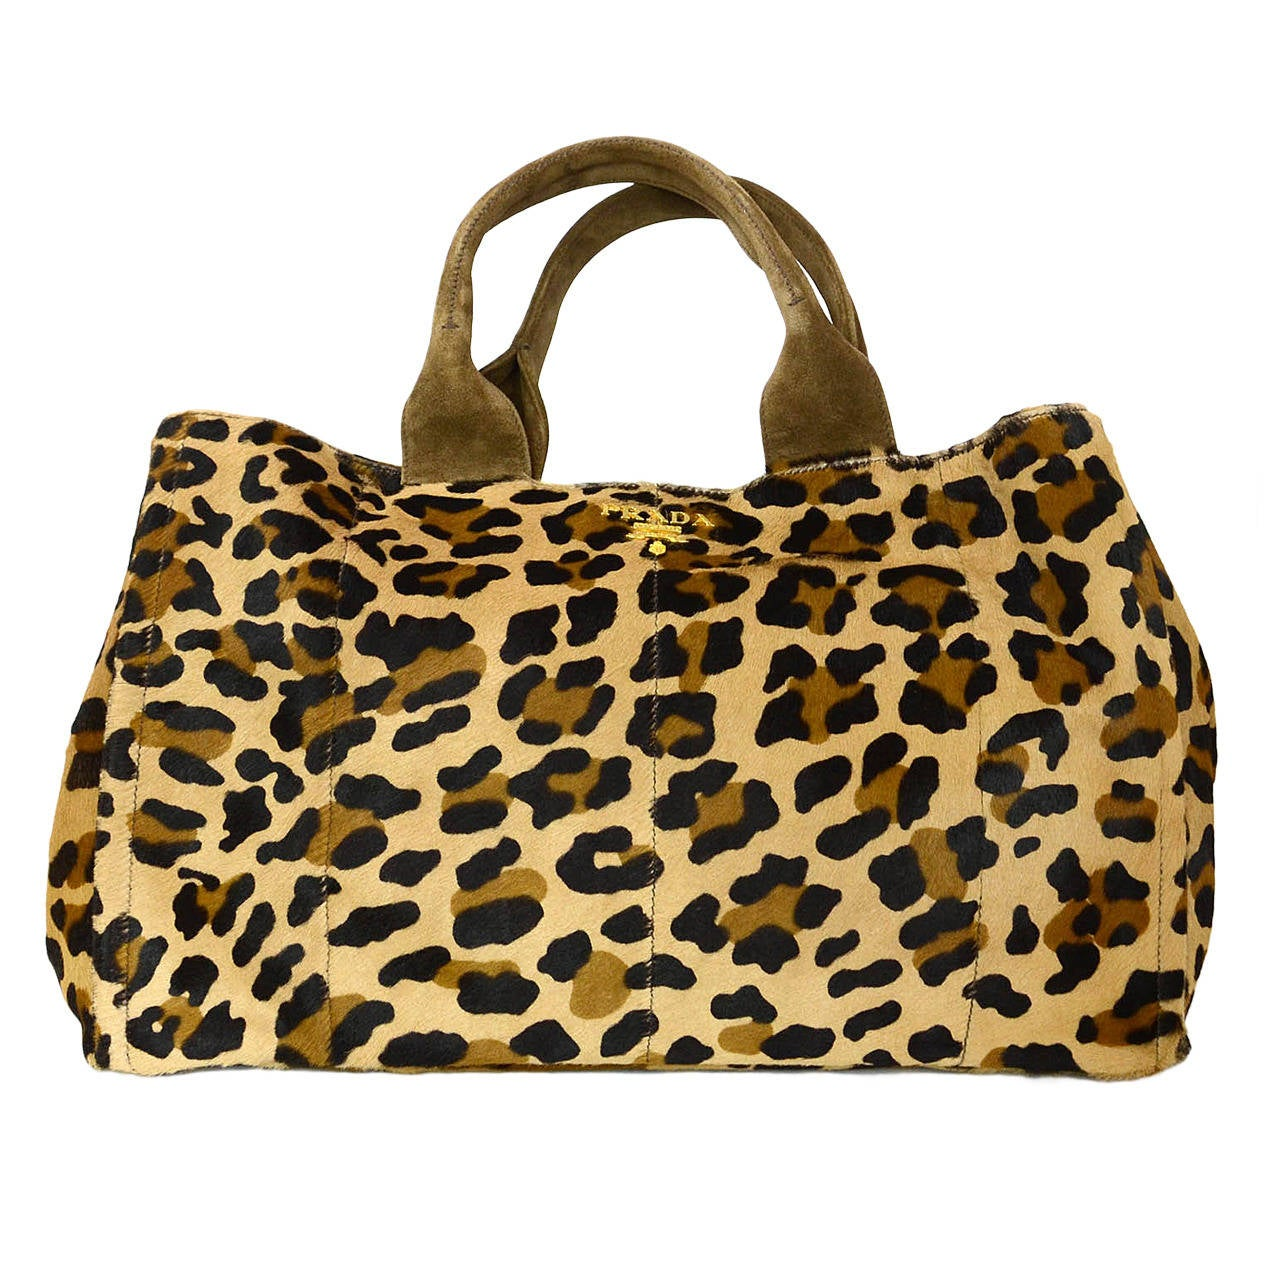 prada brown and black leopard print pony hair tote bag at